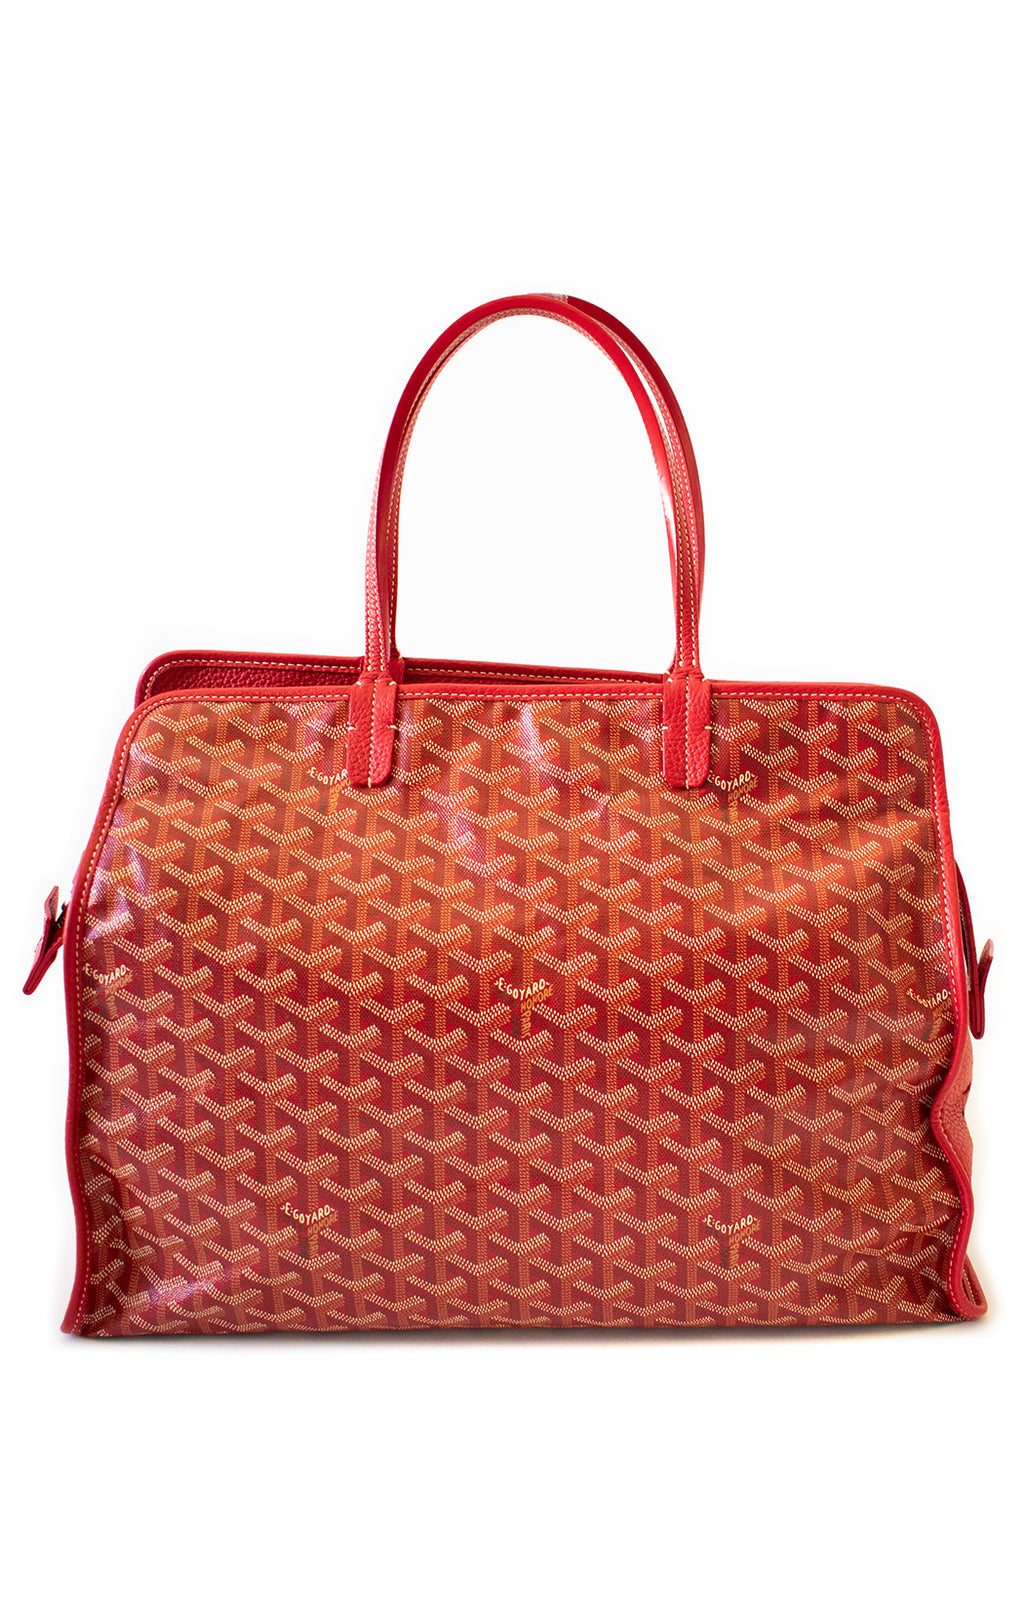 "Front view of GOYARD Pet Carrier Handbag Size: 12"" x 16"" x 7"""